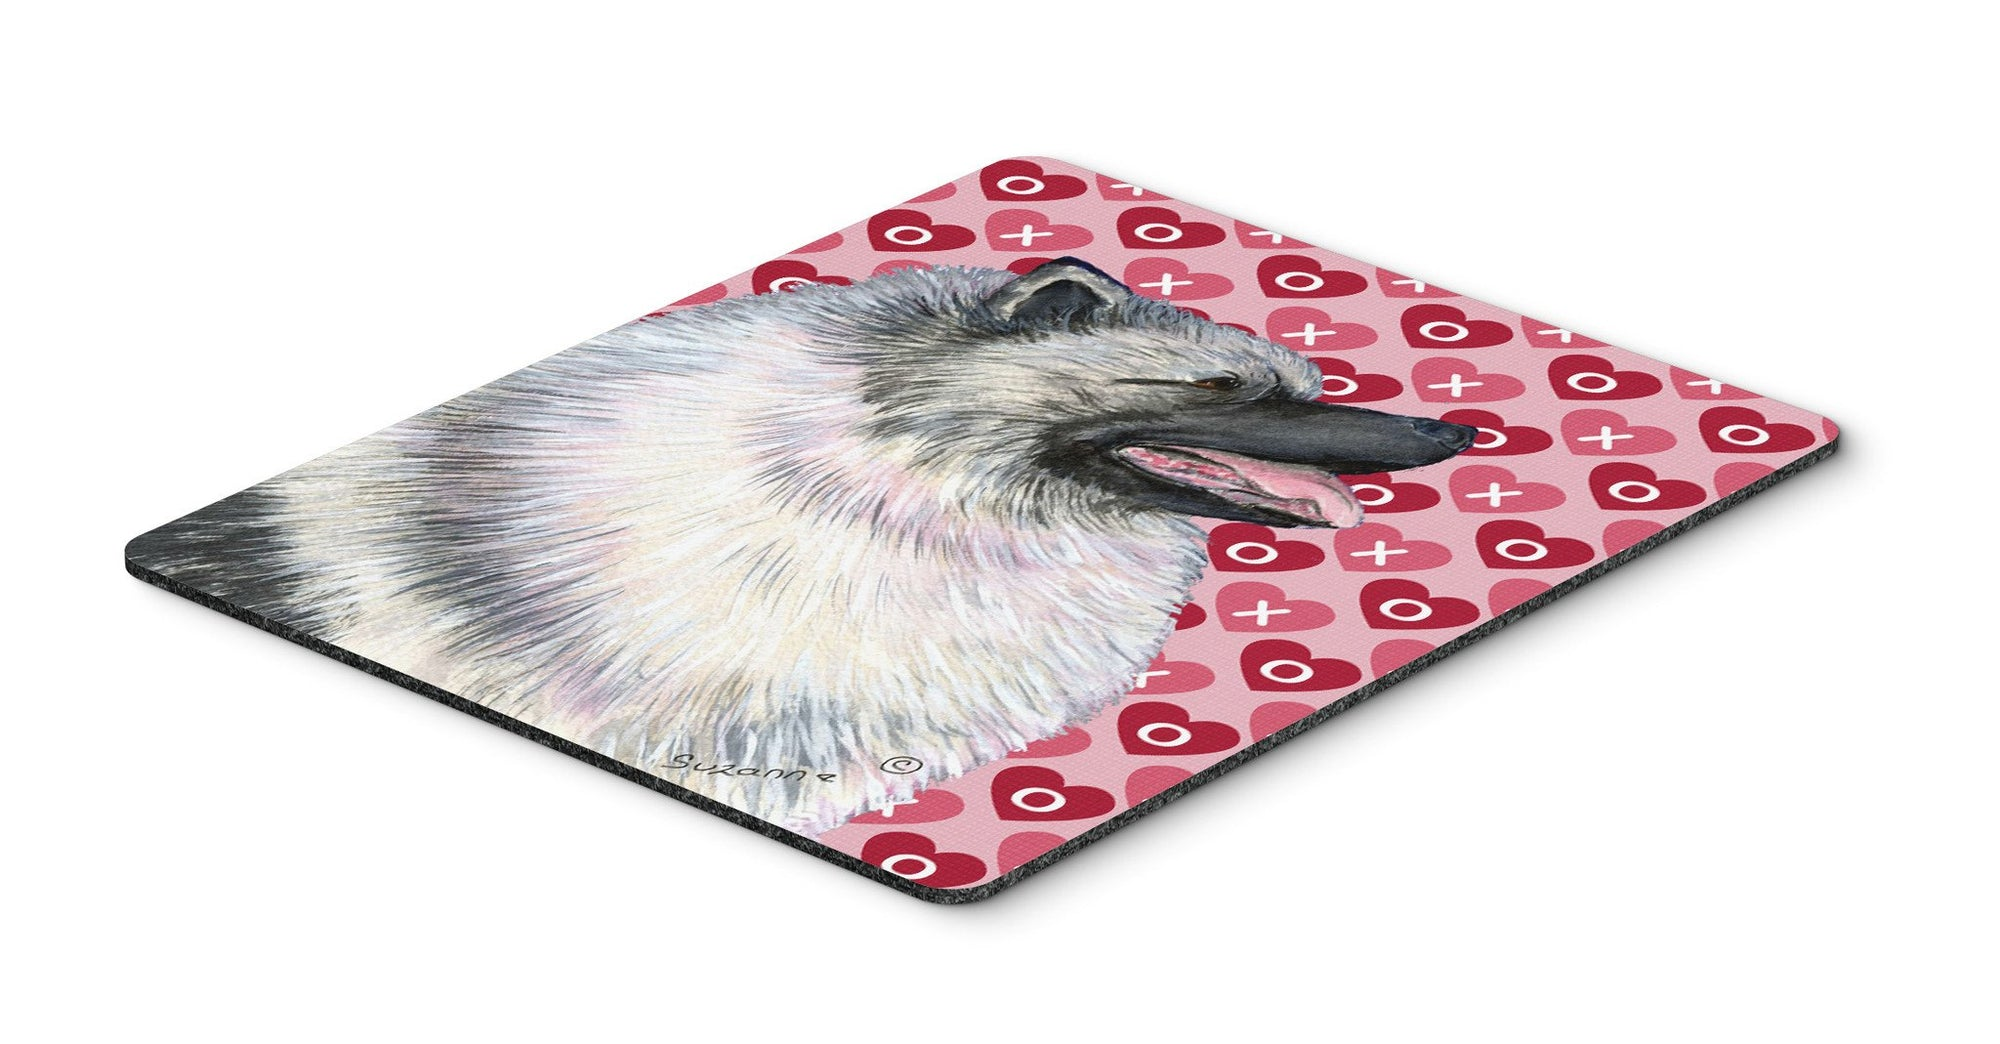 Keeshond Hearts Love and Valentine's Day Portrait Mouse Pad, Hot Pad or Trivet by Caroline's Treasures